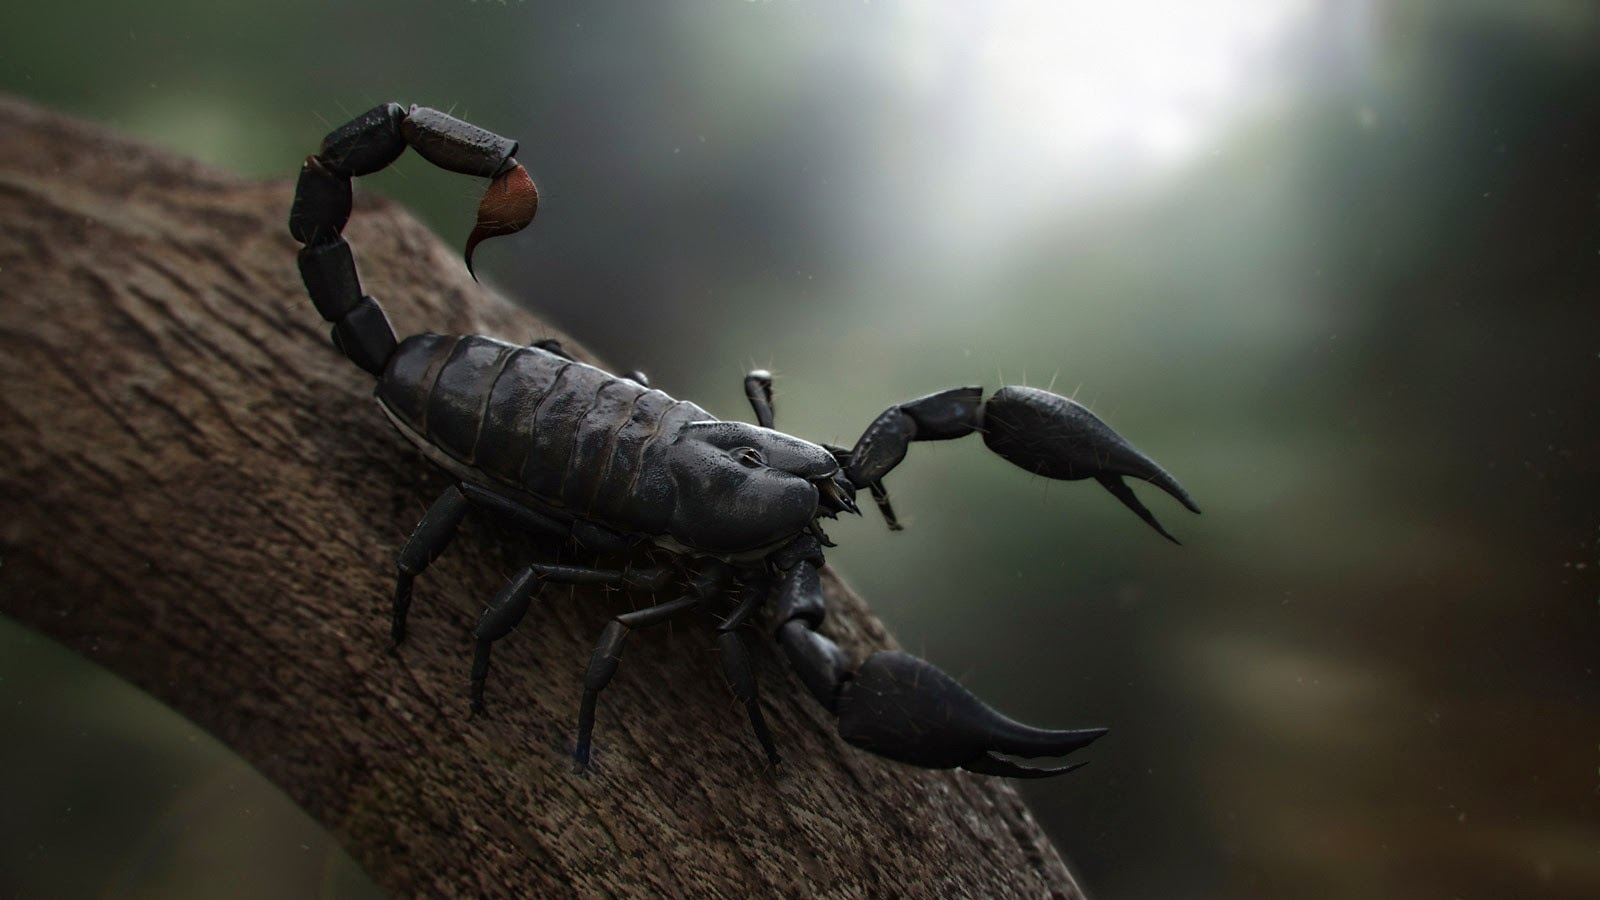 Scorpions Is There Anybody There Another Piece Of Meat